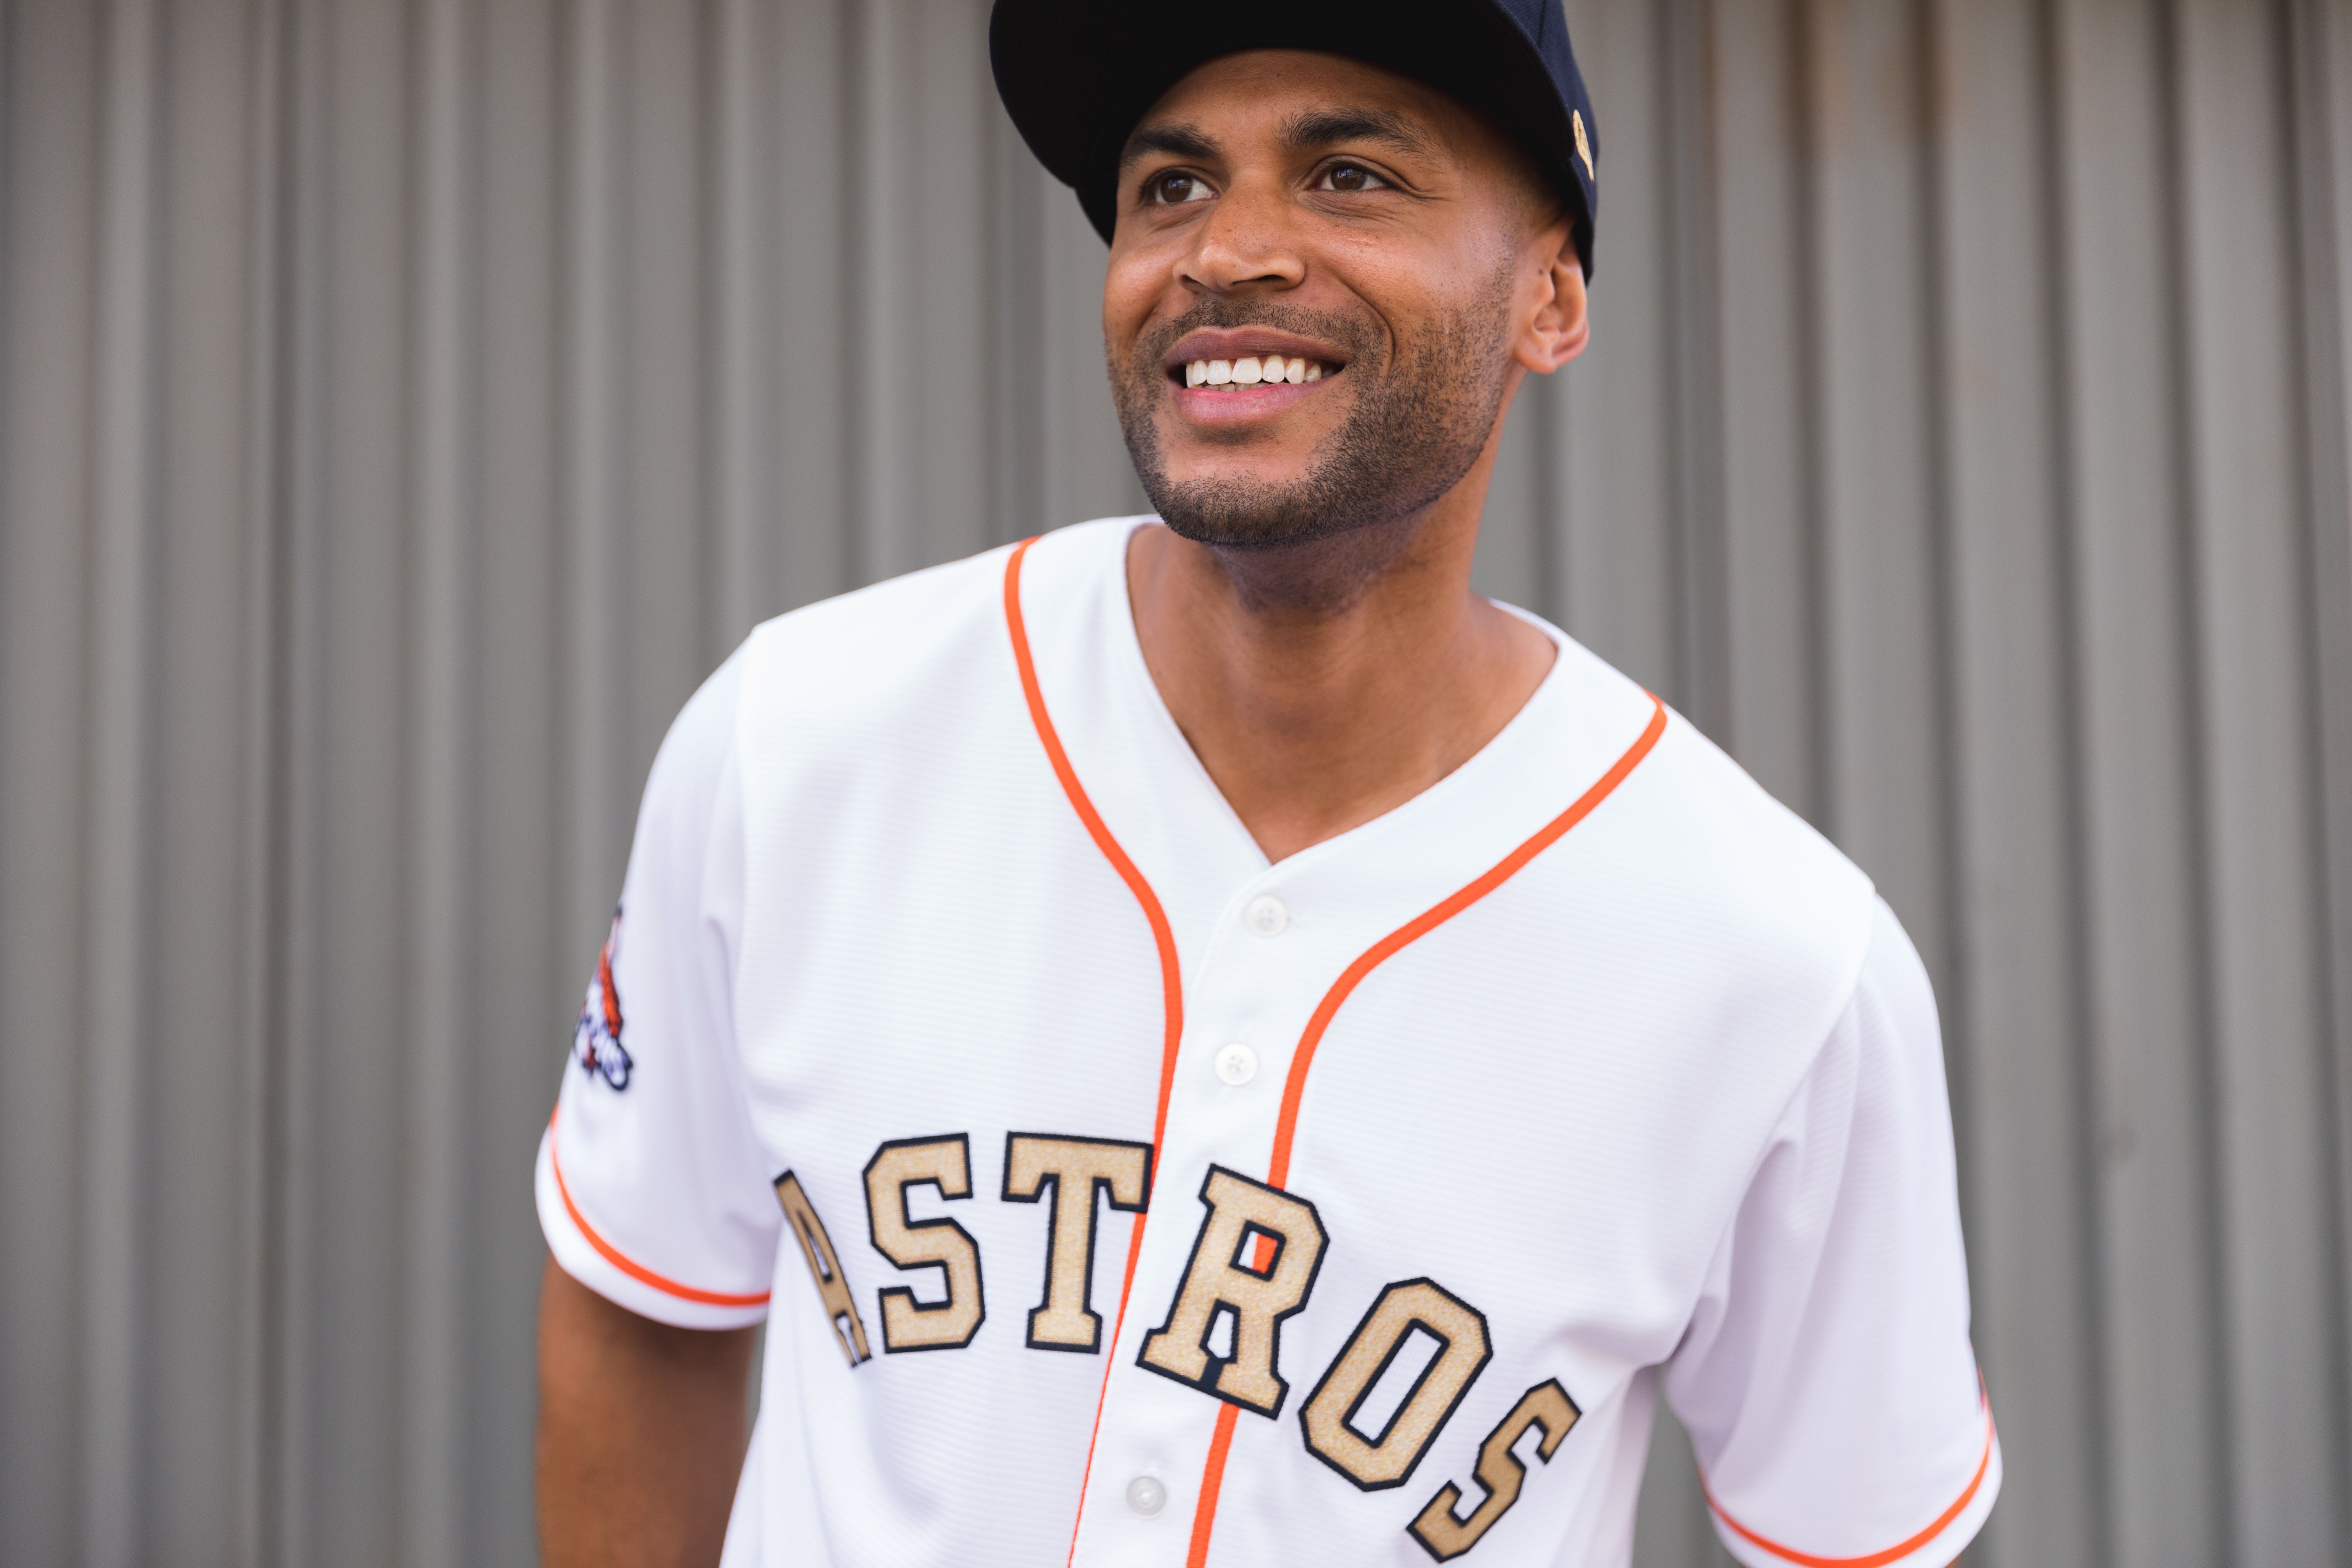 Celebrate The 2017 World Series Champions With The Limited Edition Houston Astros Gold Collection Jersey Stay Gold Astros Fans Mlb Apparel Jersey Men